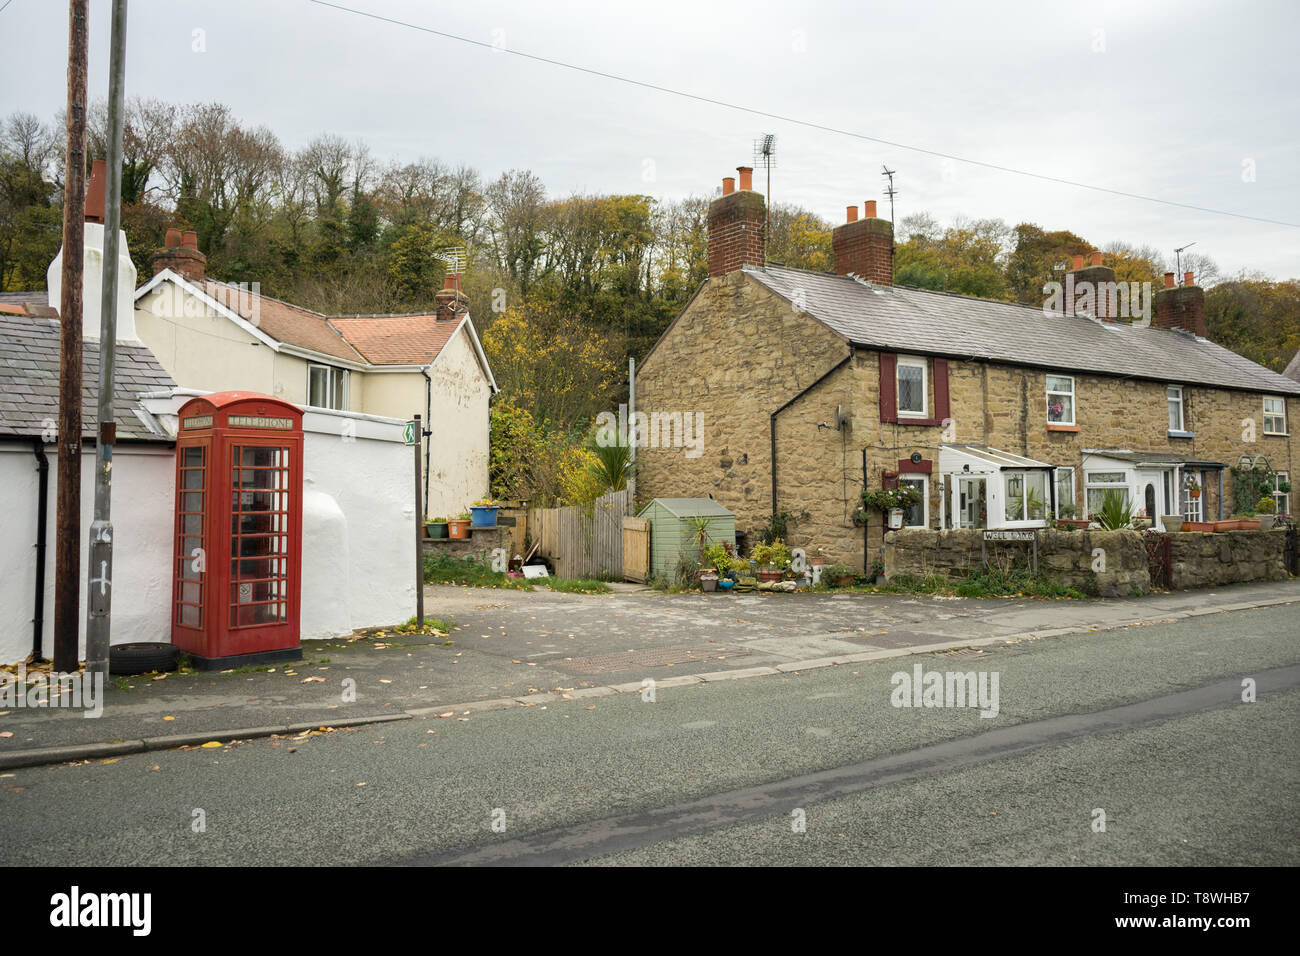 Rural Welsh Village with terraced houses, cottages, in Wales, UK with Red Telephone Box - Stock Image